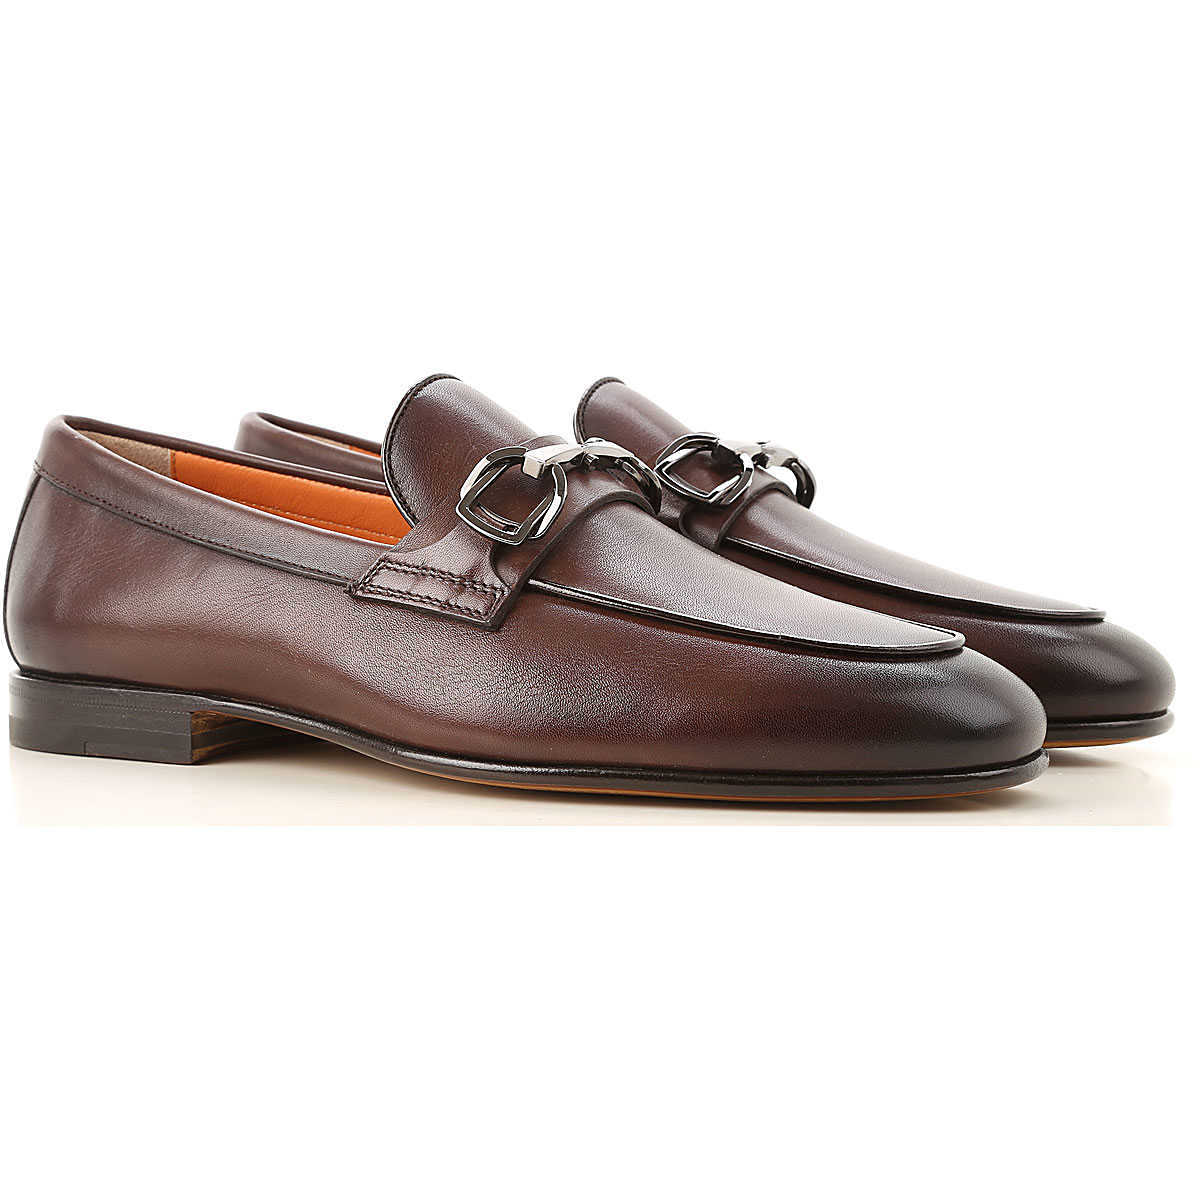 Santoni Loafers for Men Brown Canada - GOOFASH - Mens LOAFERS